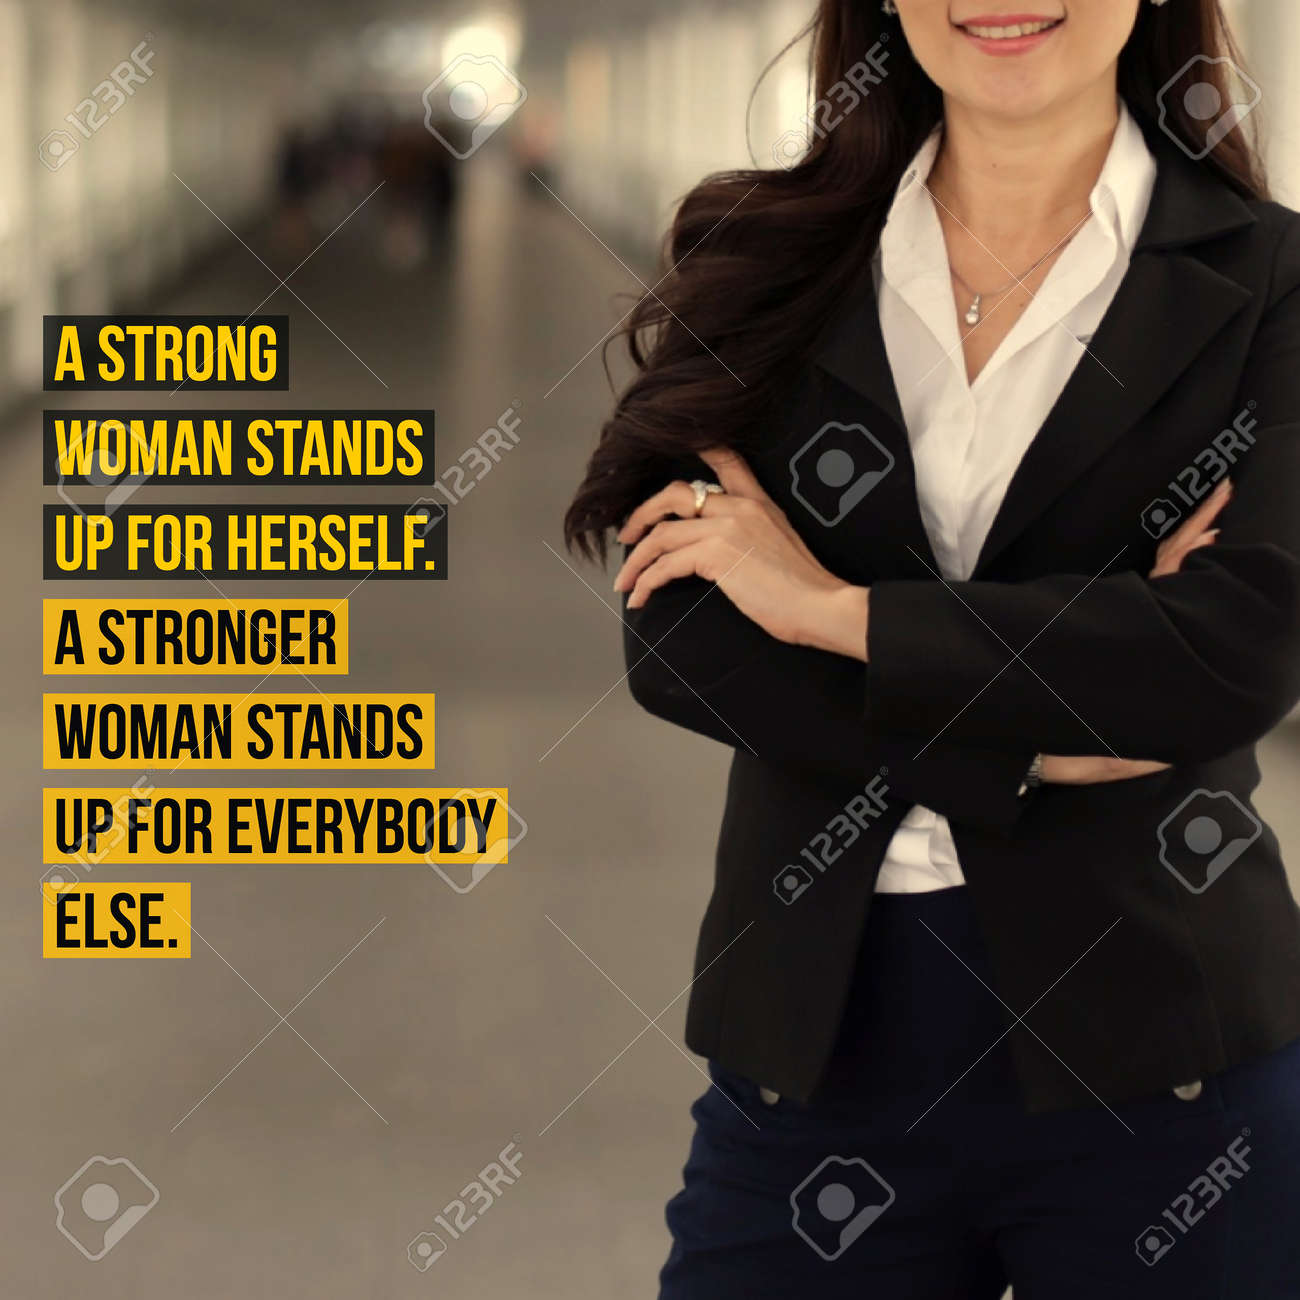 Inspirational Motivation Quote About Women Power And Leadership